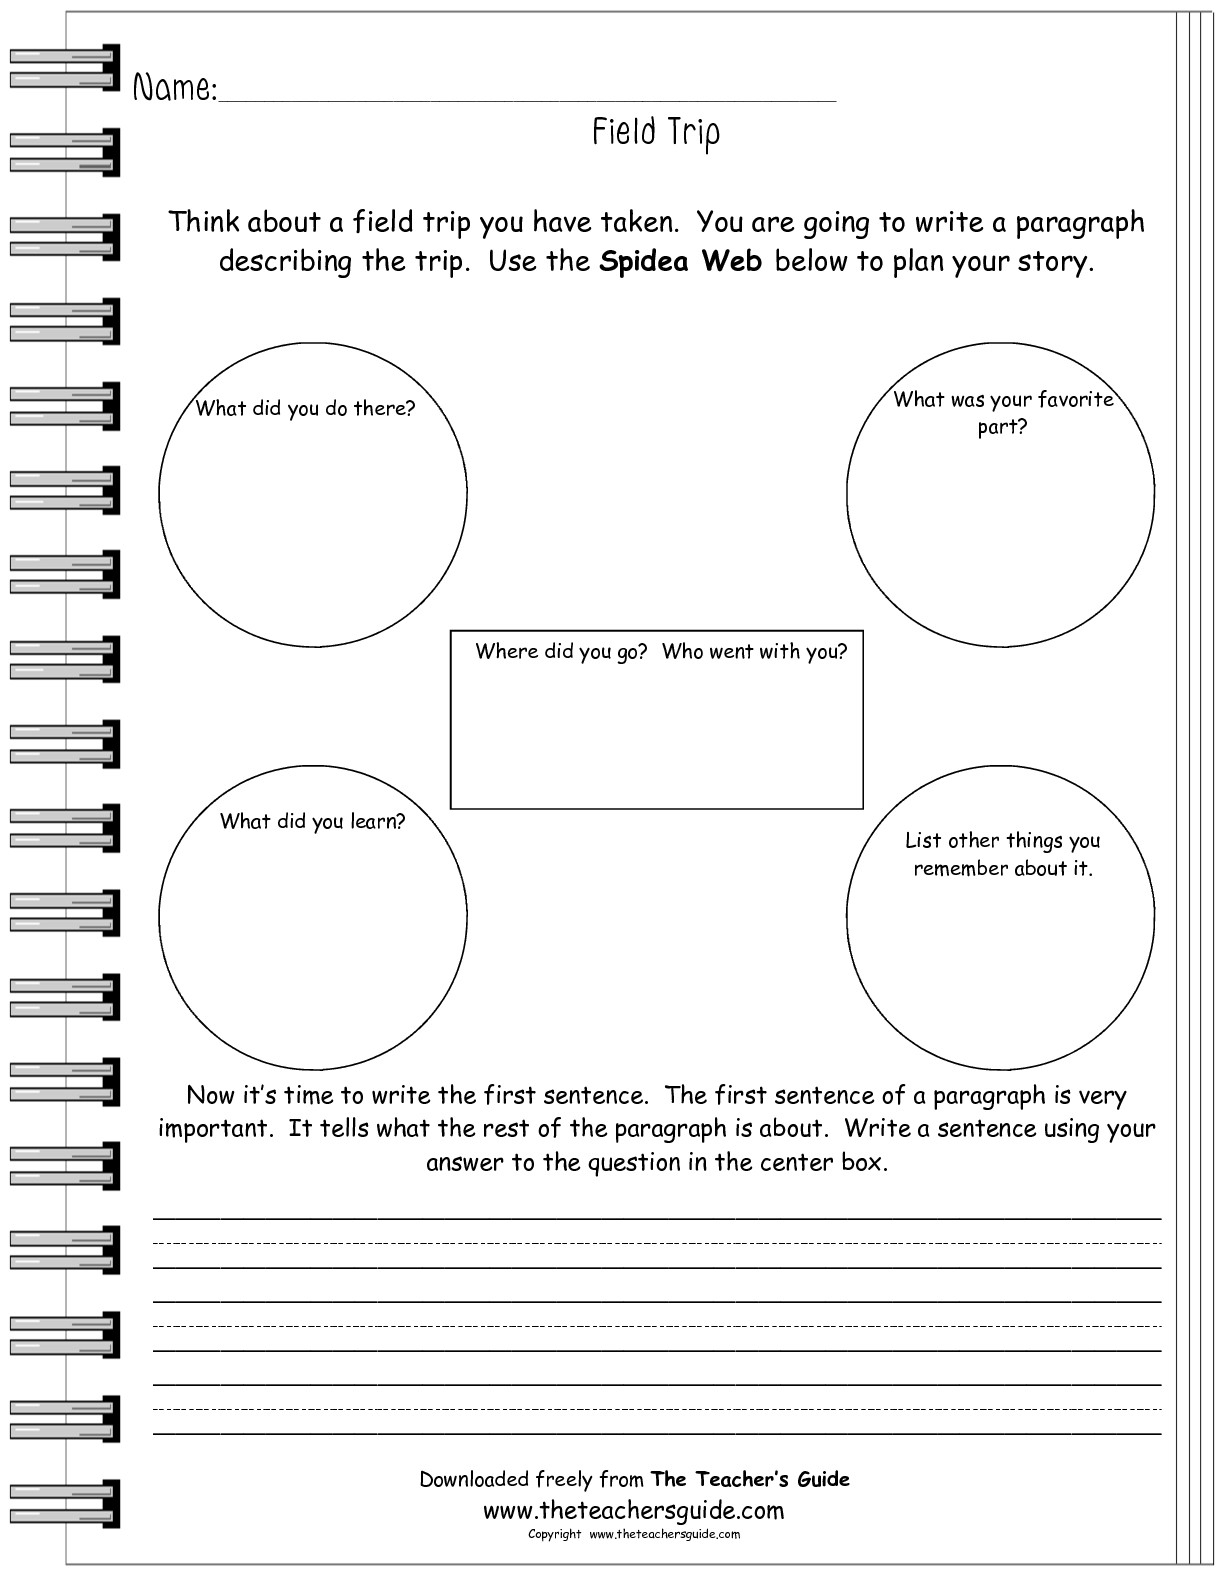 Free Writing And Language Arts From The Teacher S Guide In